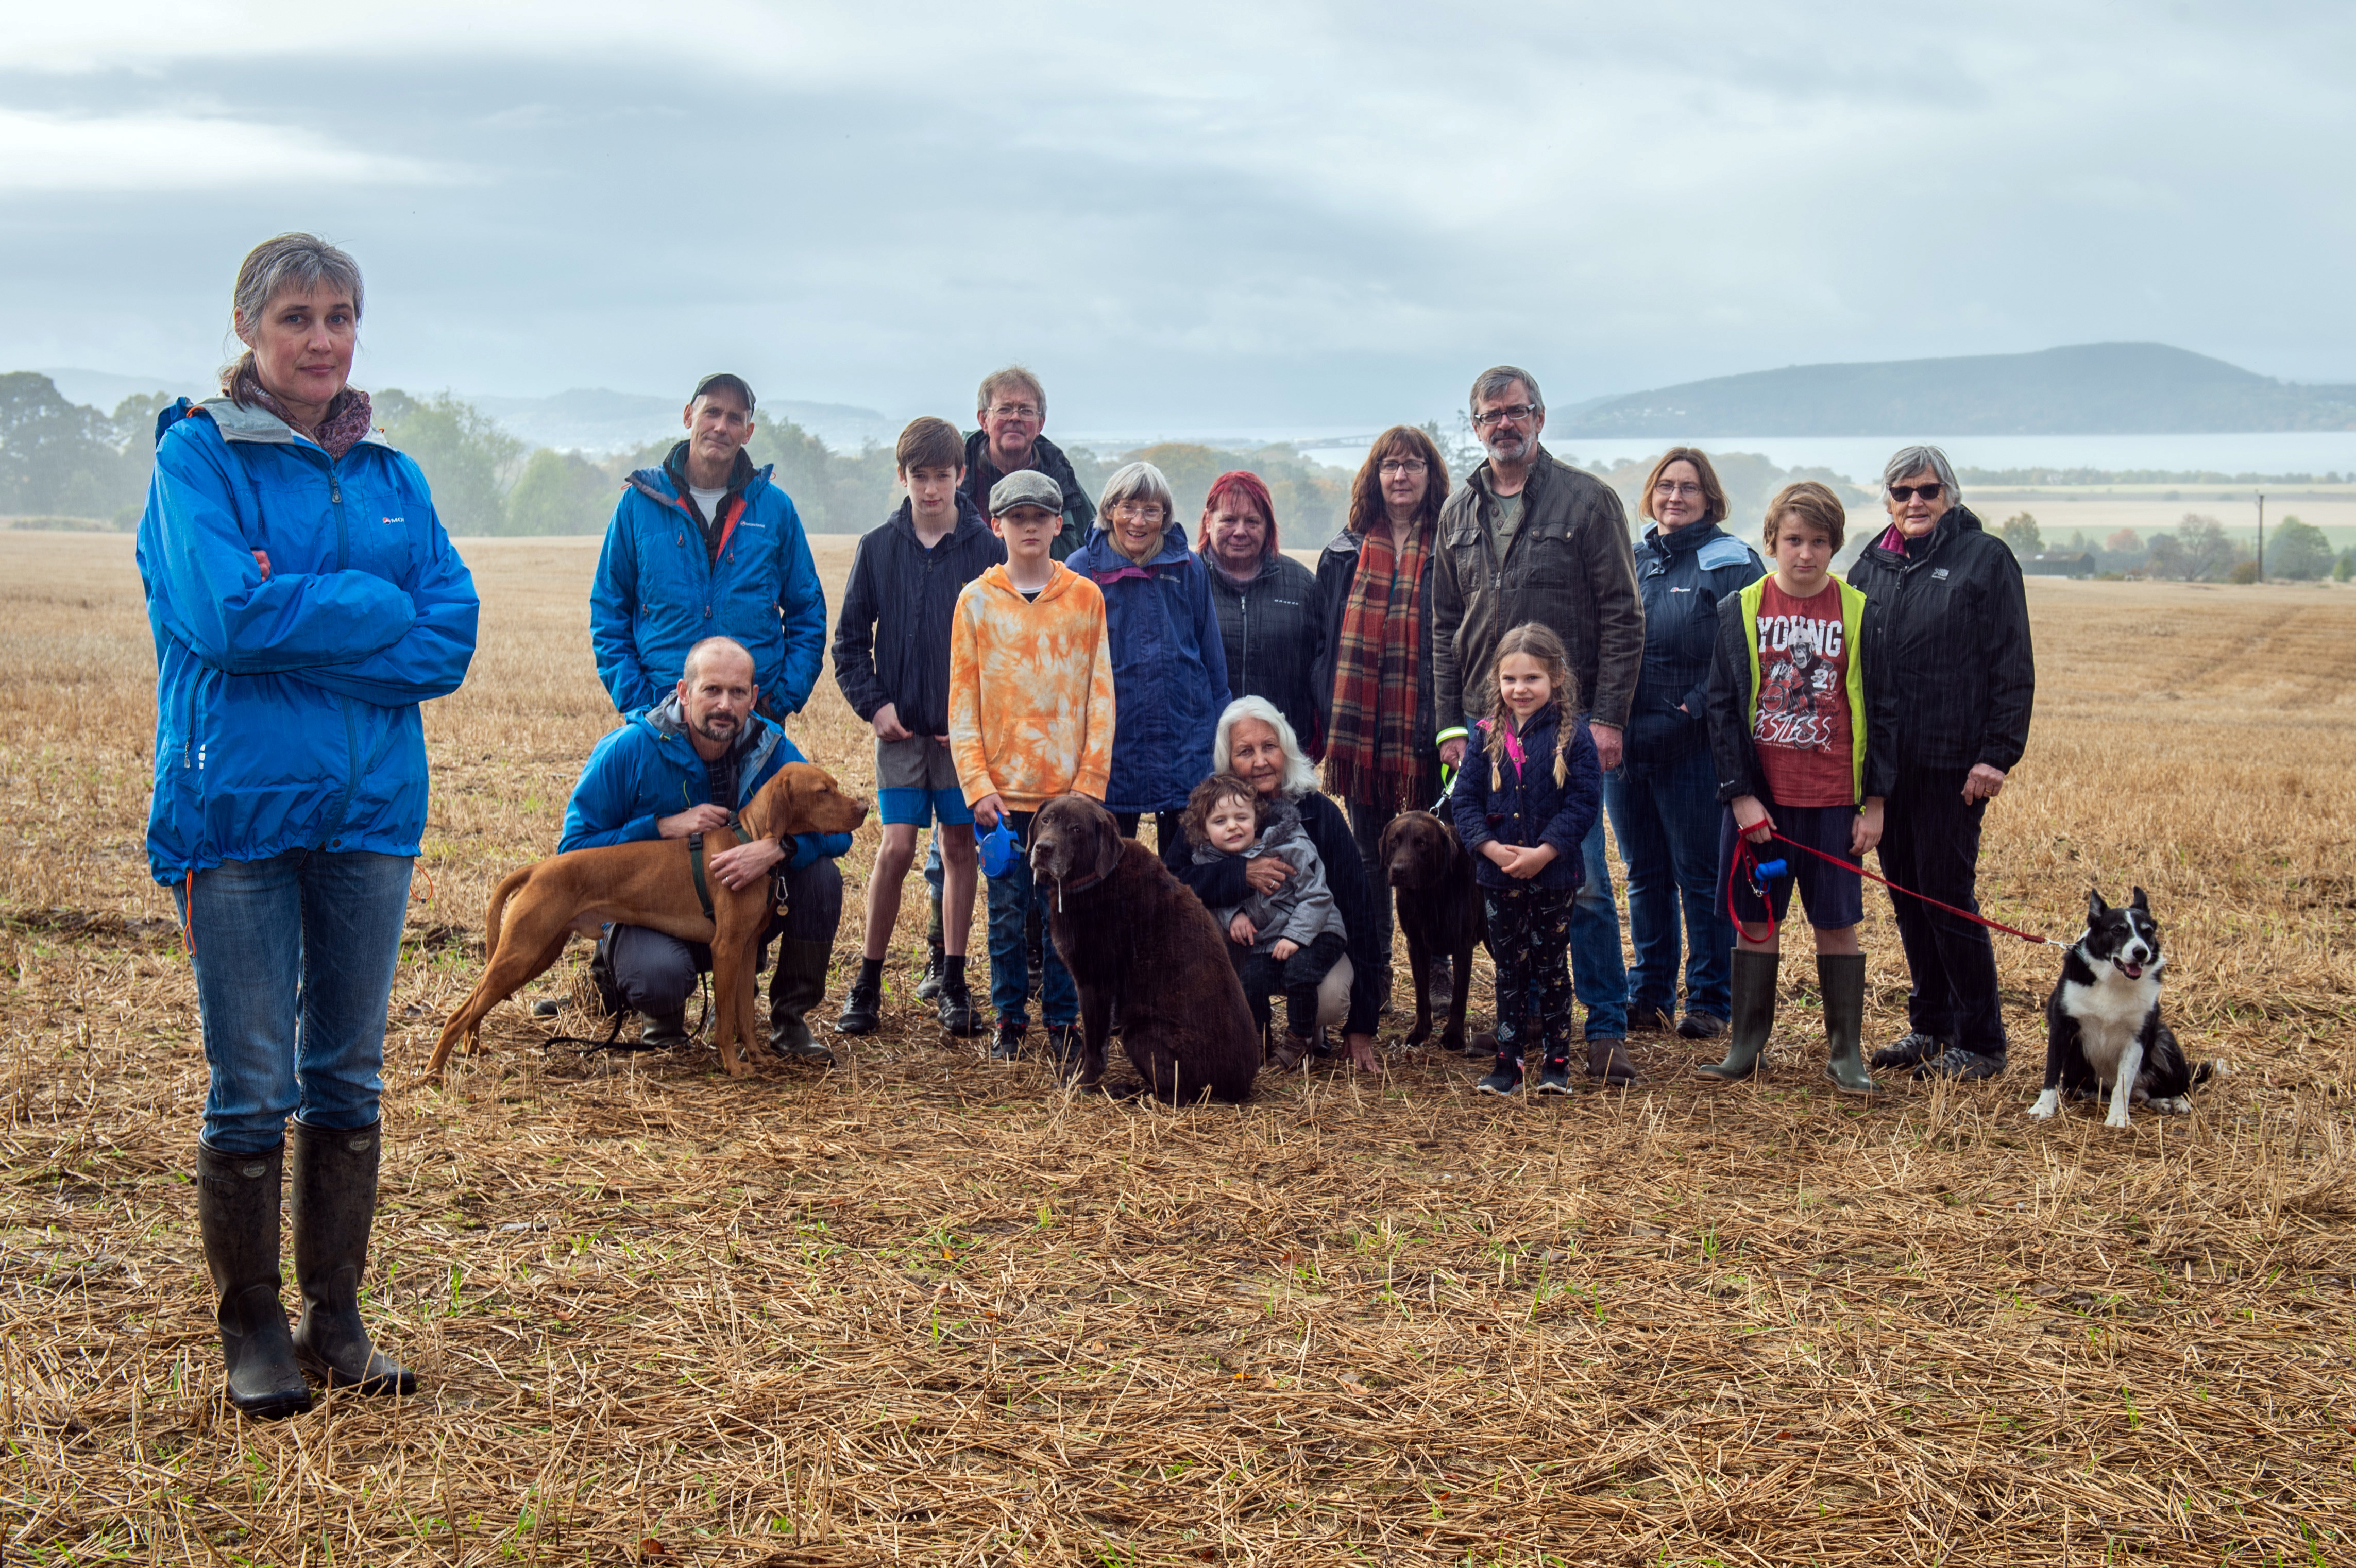 Melanie Smith (Baloch & Culloden Communities Lead of Save Our Space Campaign), left, with villagers who oppose the proposed development. Picture by Jason Hedges